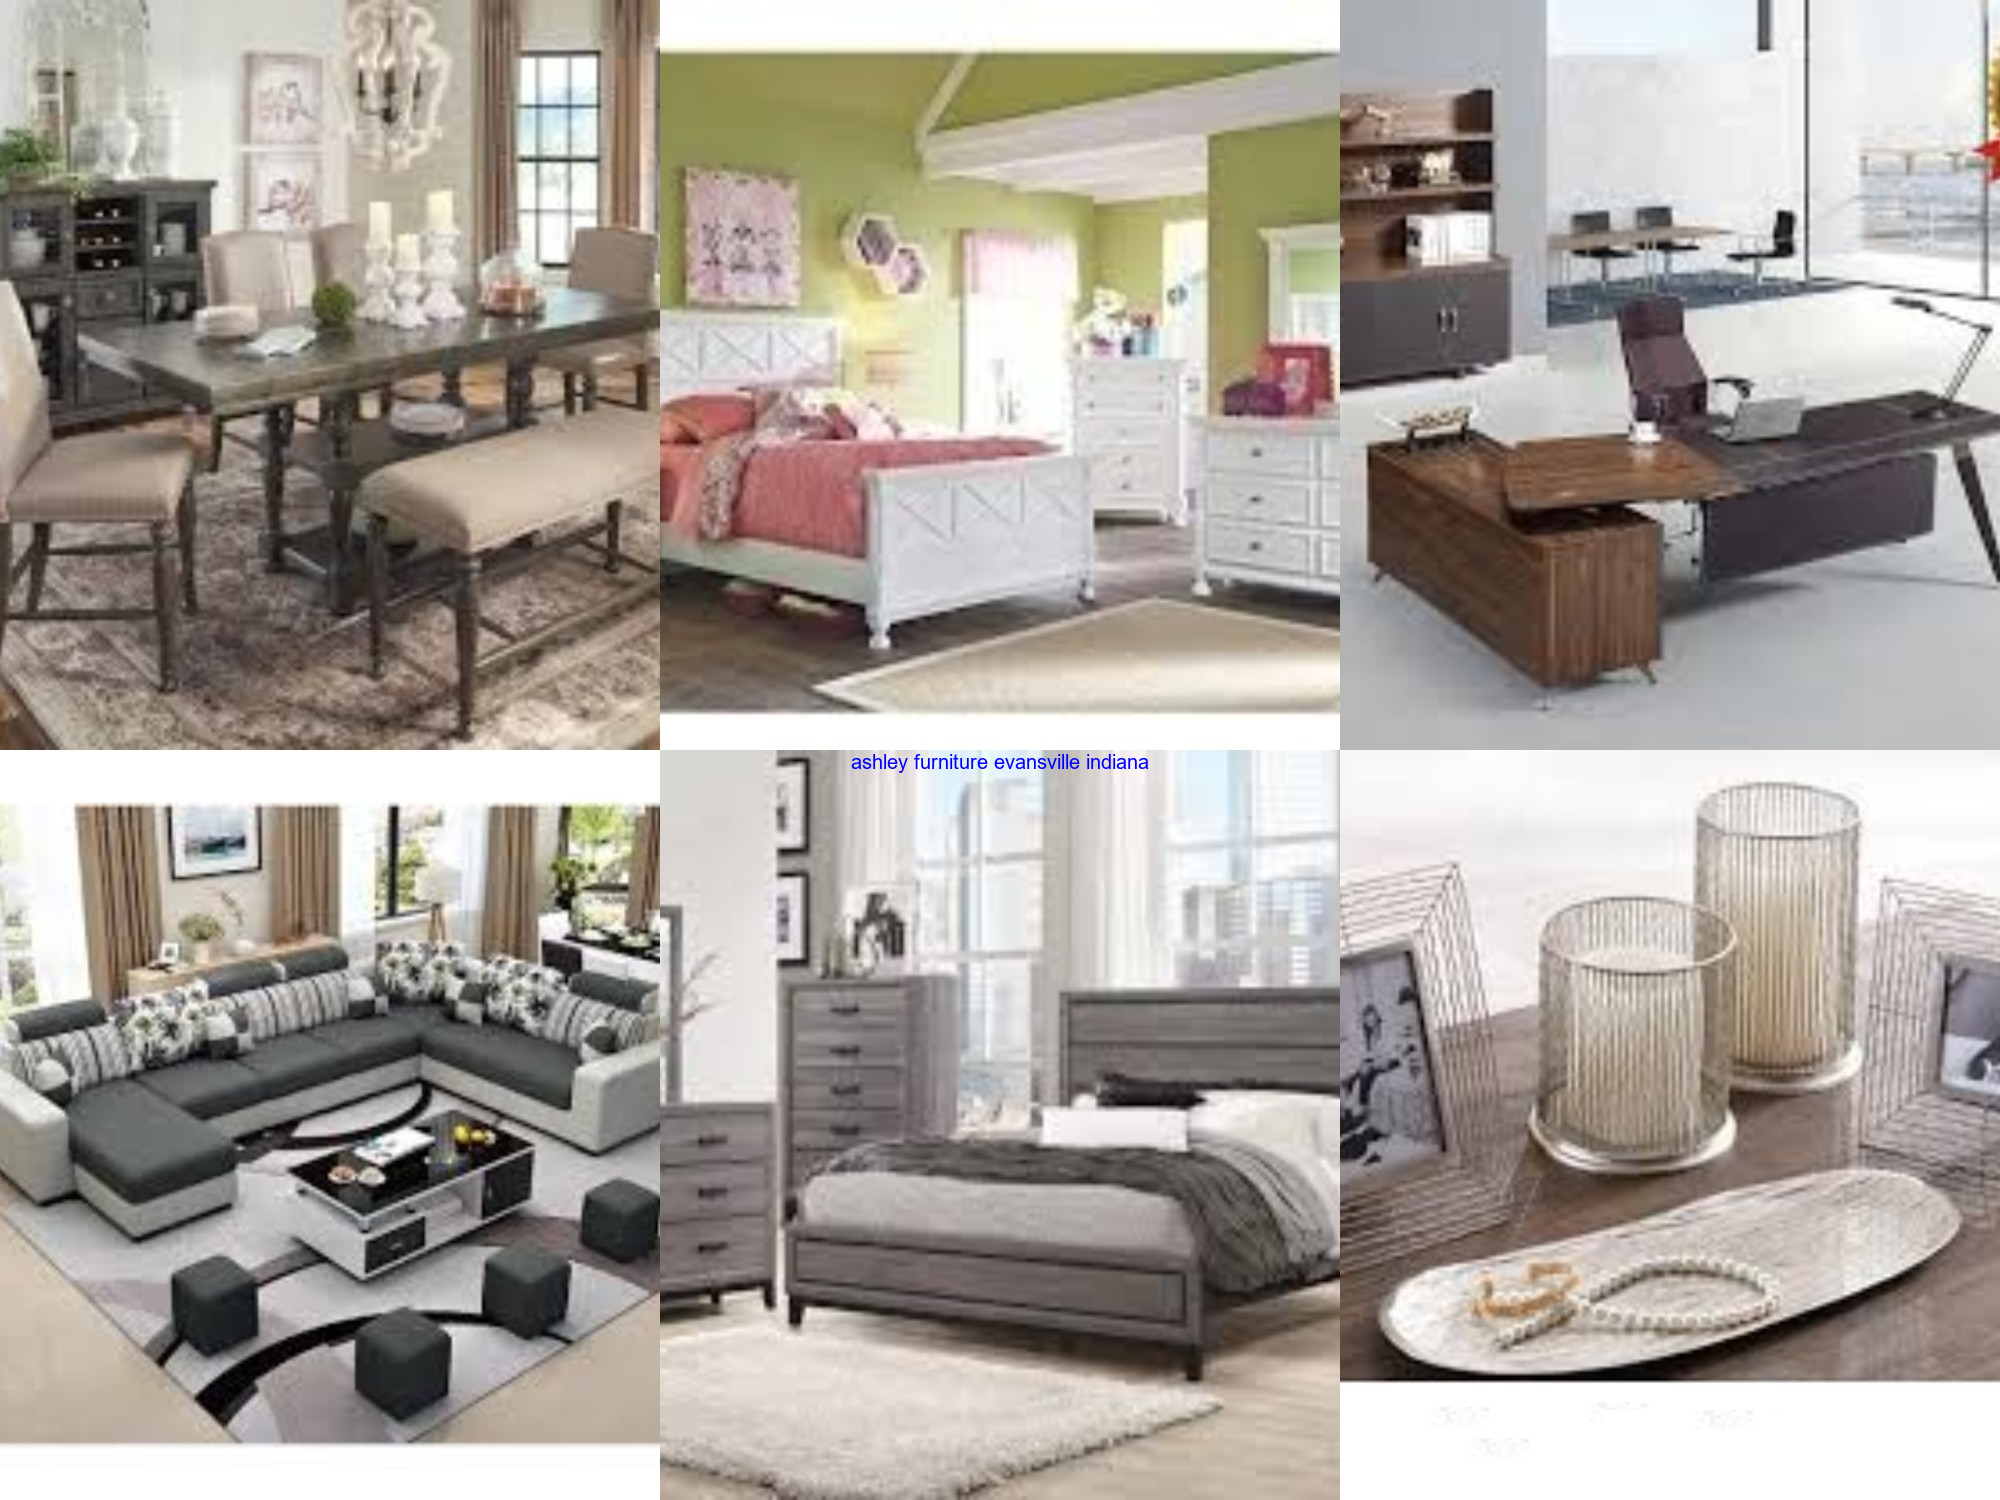 ashley furniture evansville indiana - i suggest one to try